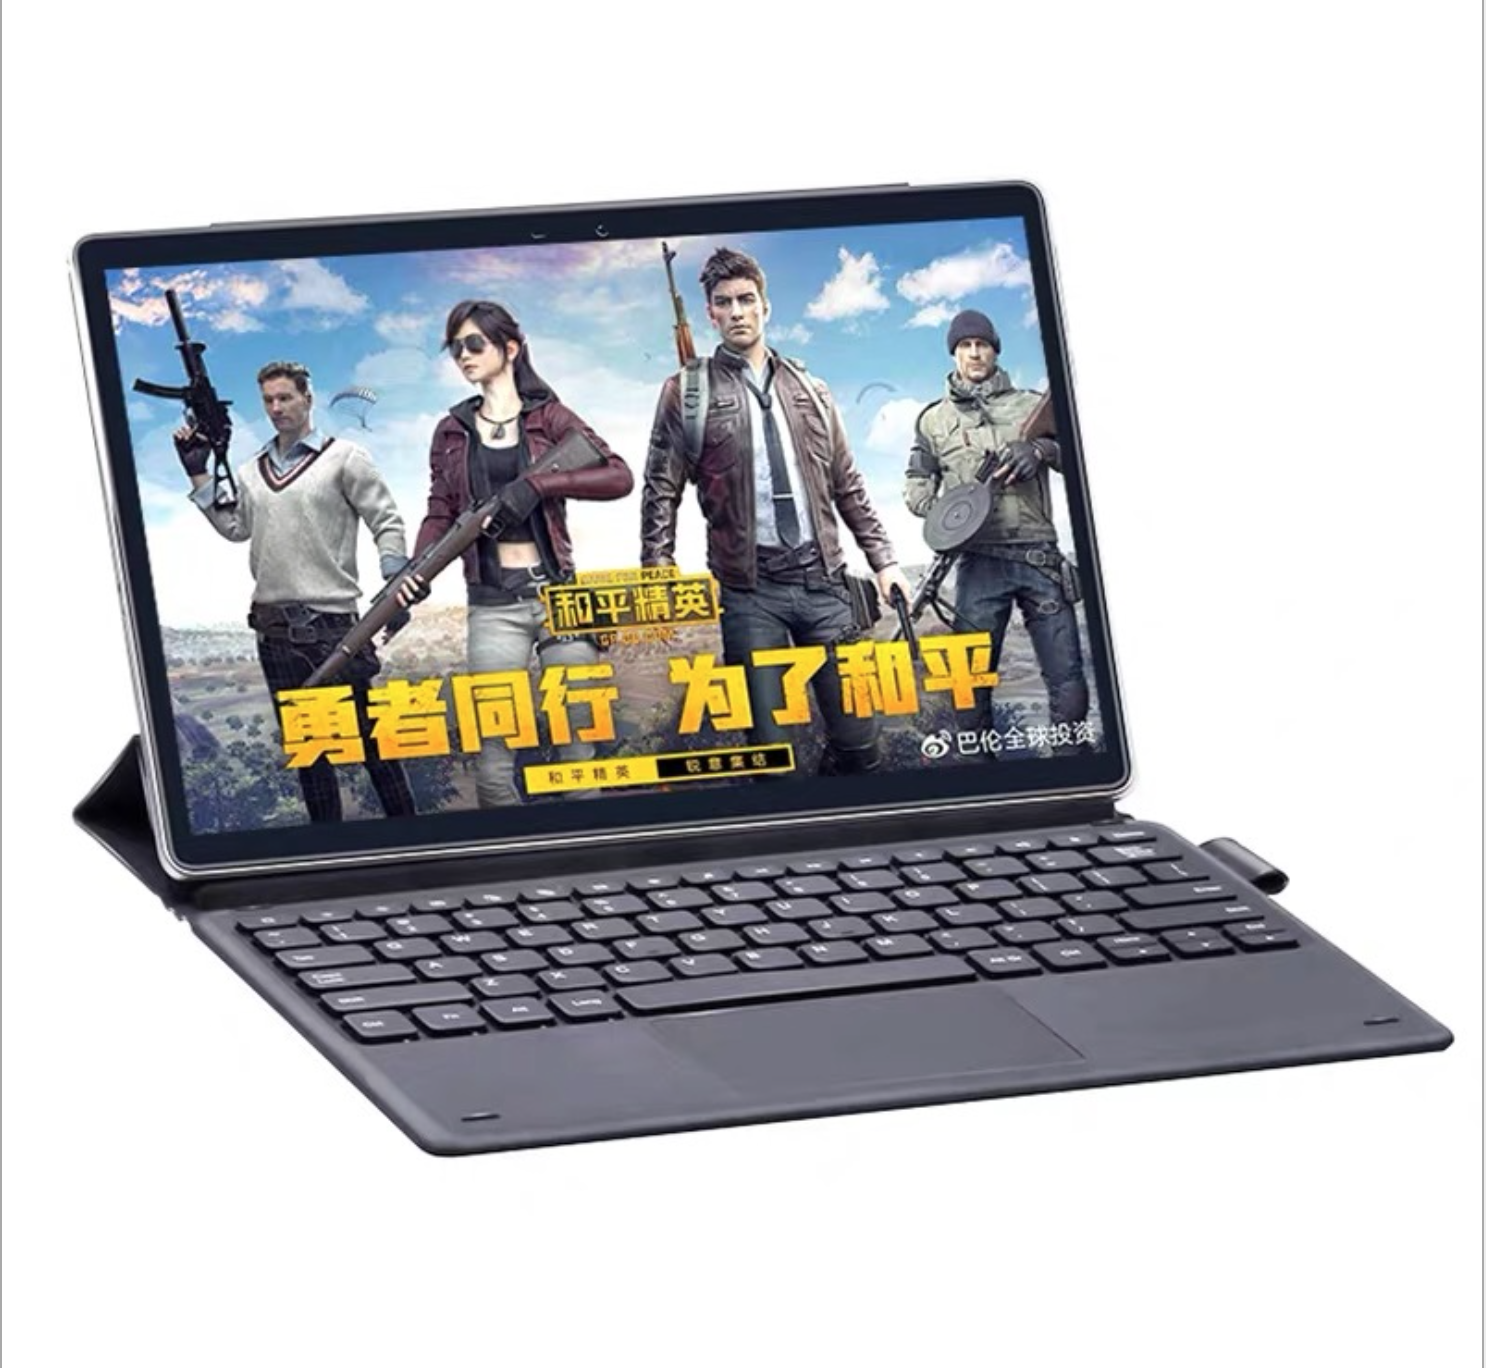 Android 9.0 Tablet 11.6 Inch Touchscreen Tablet PC 10 Deco Core Processor 8GB RAM 256GB ROM 4G Phone Call 13MP Camera